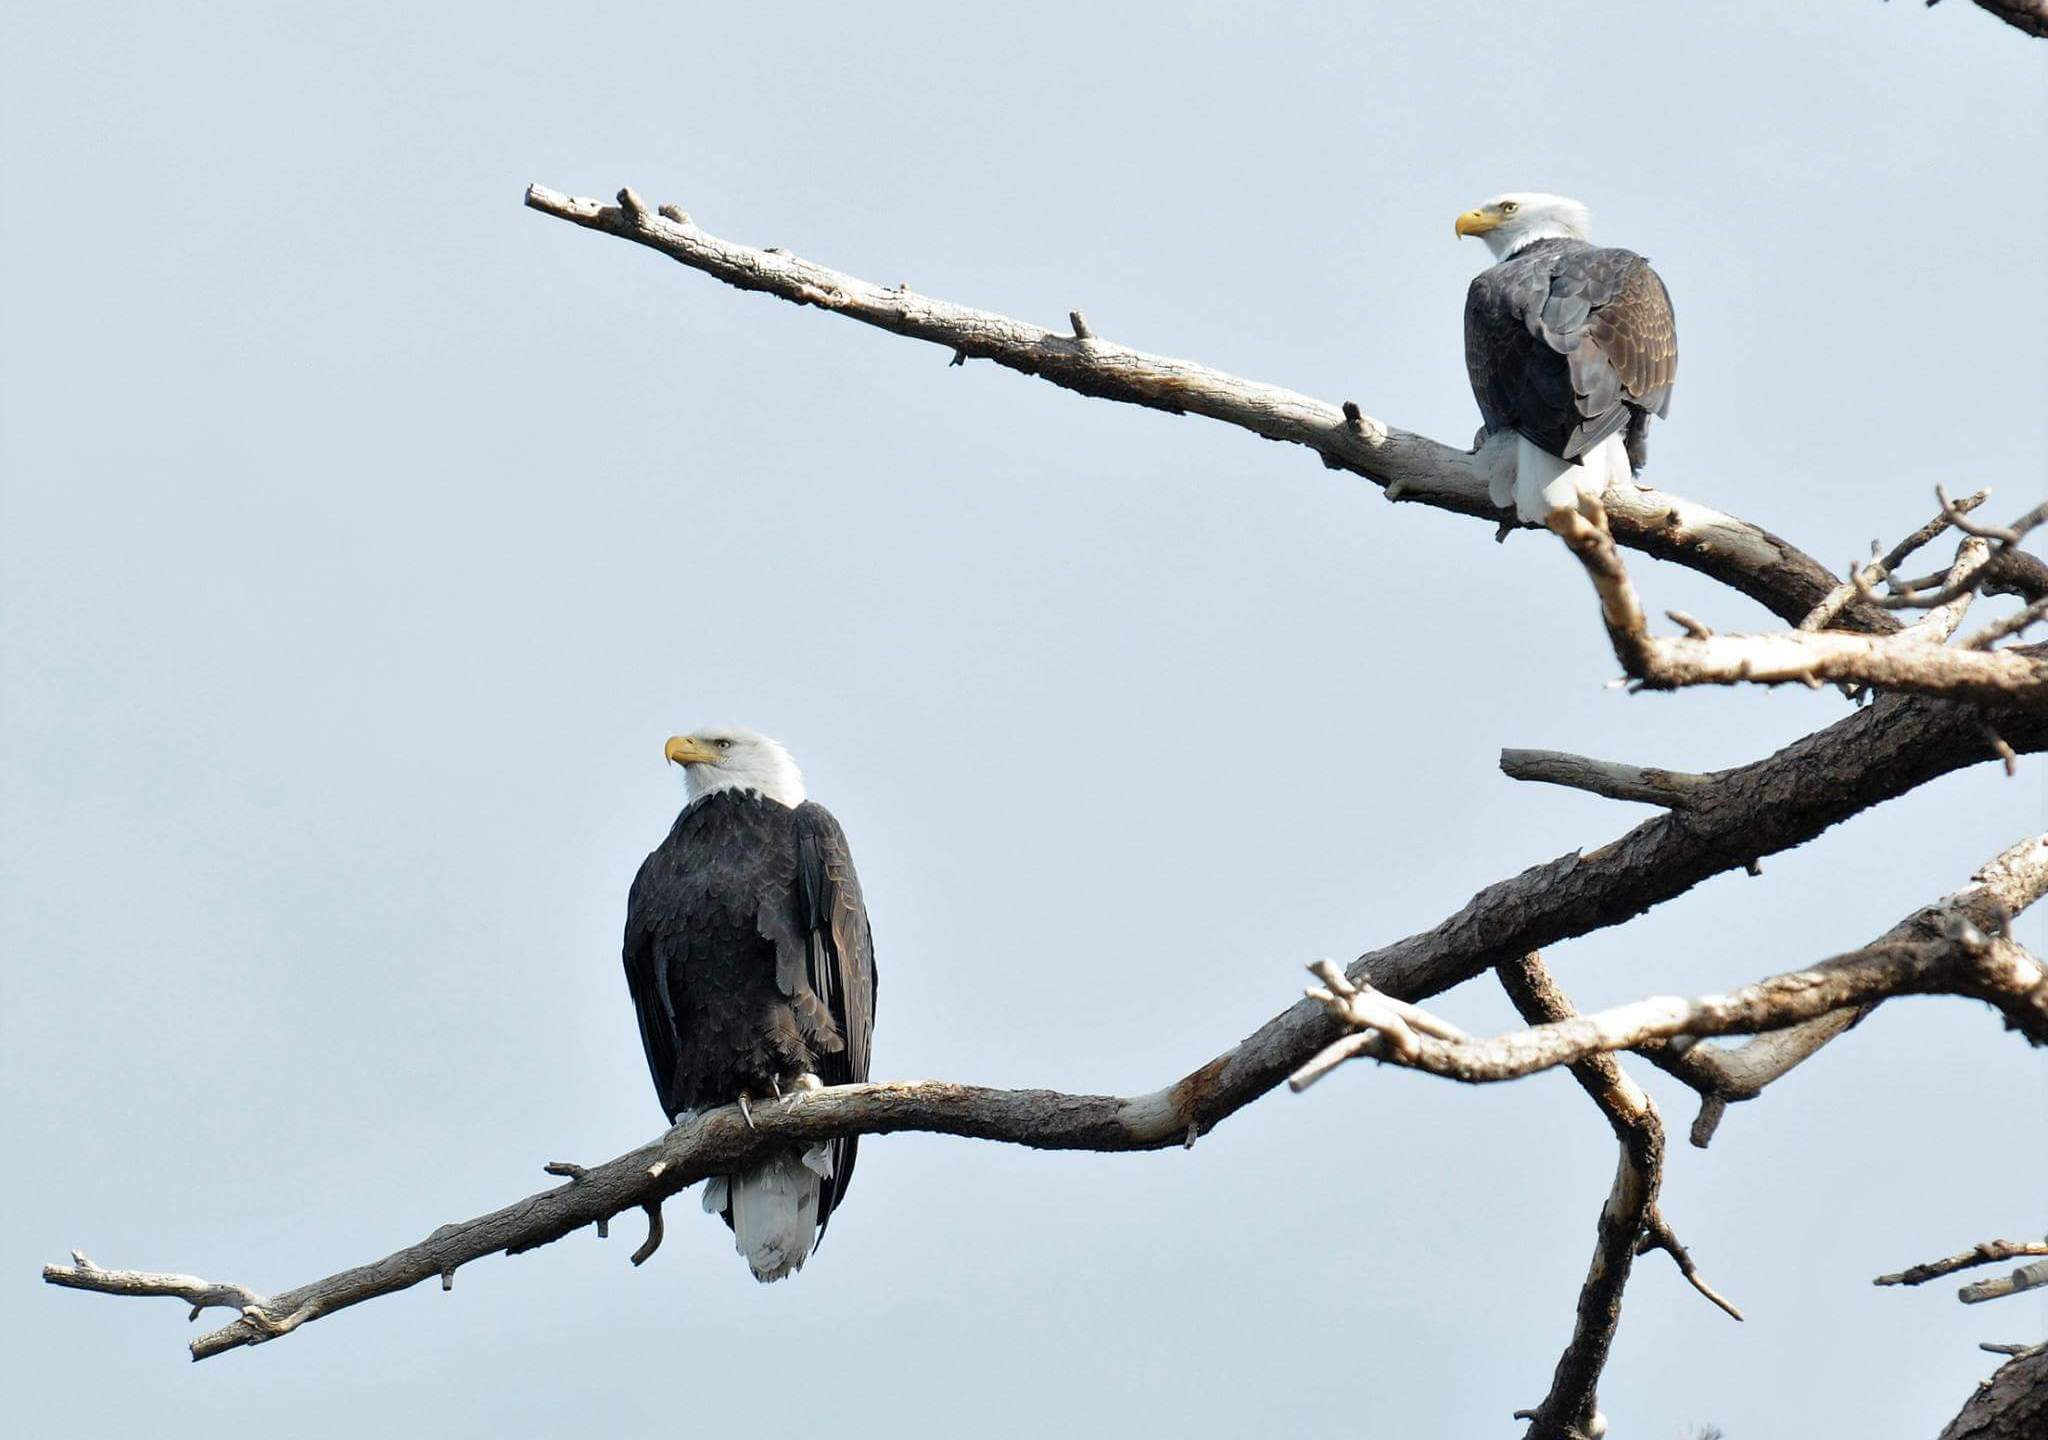 A male and female bald eagle perch on branches in Big Bear Lake on Dec. 9, 2017, in this photo released by the San Bernardino National Forest.